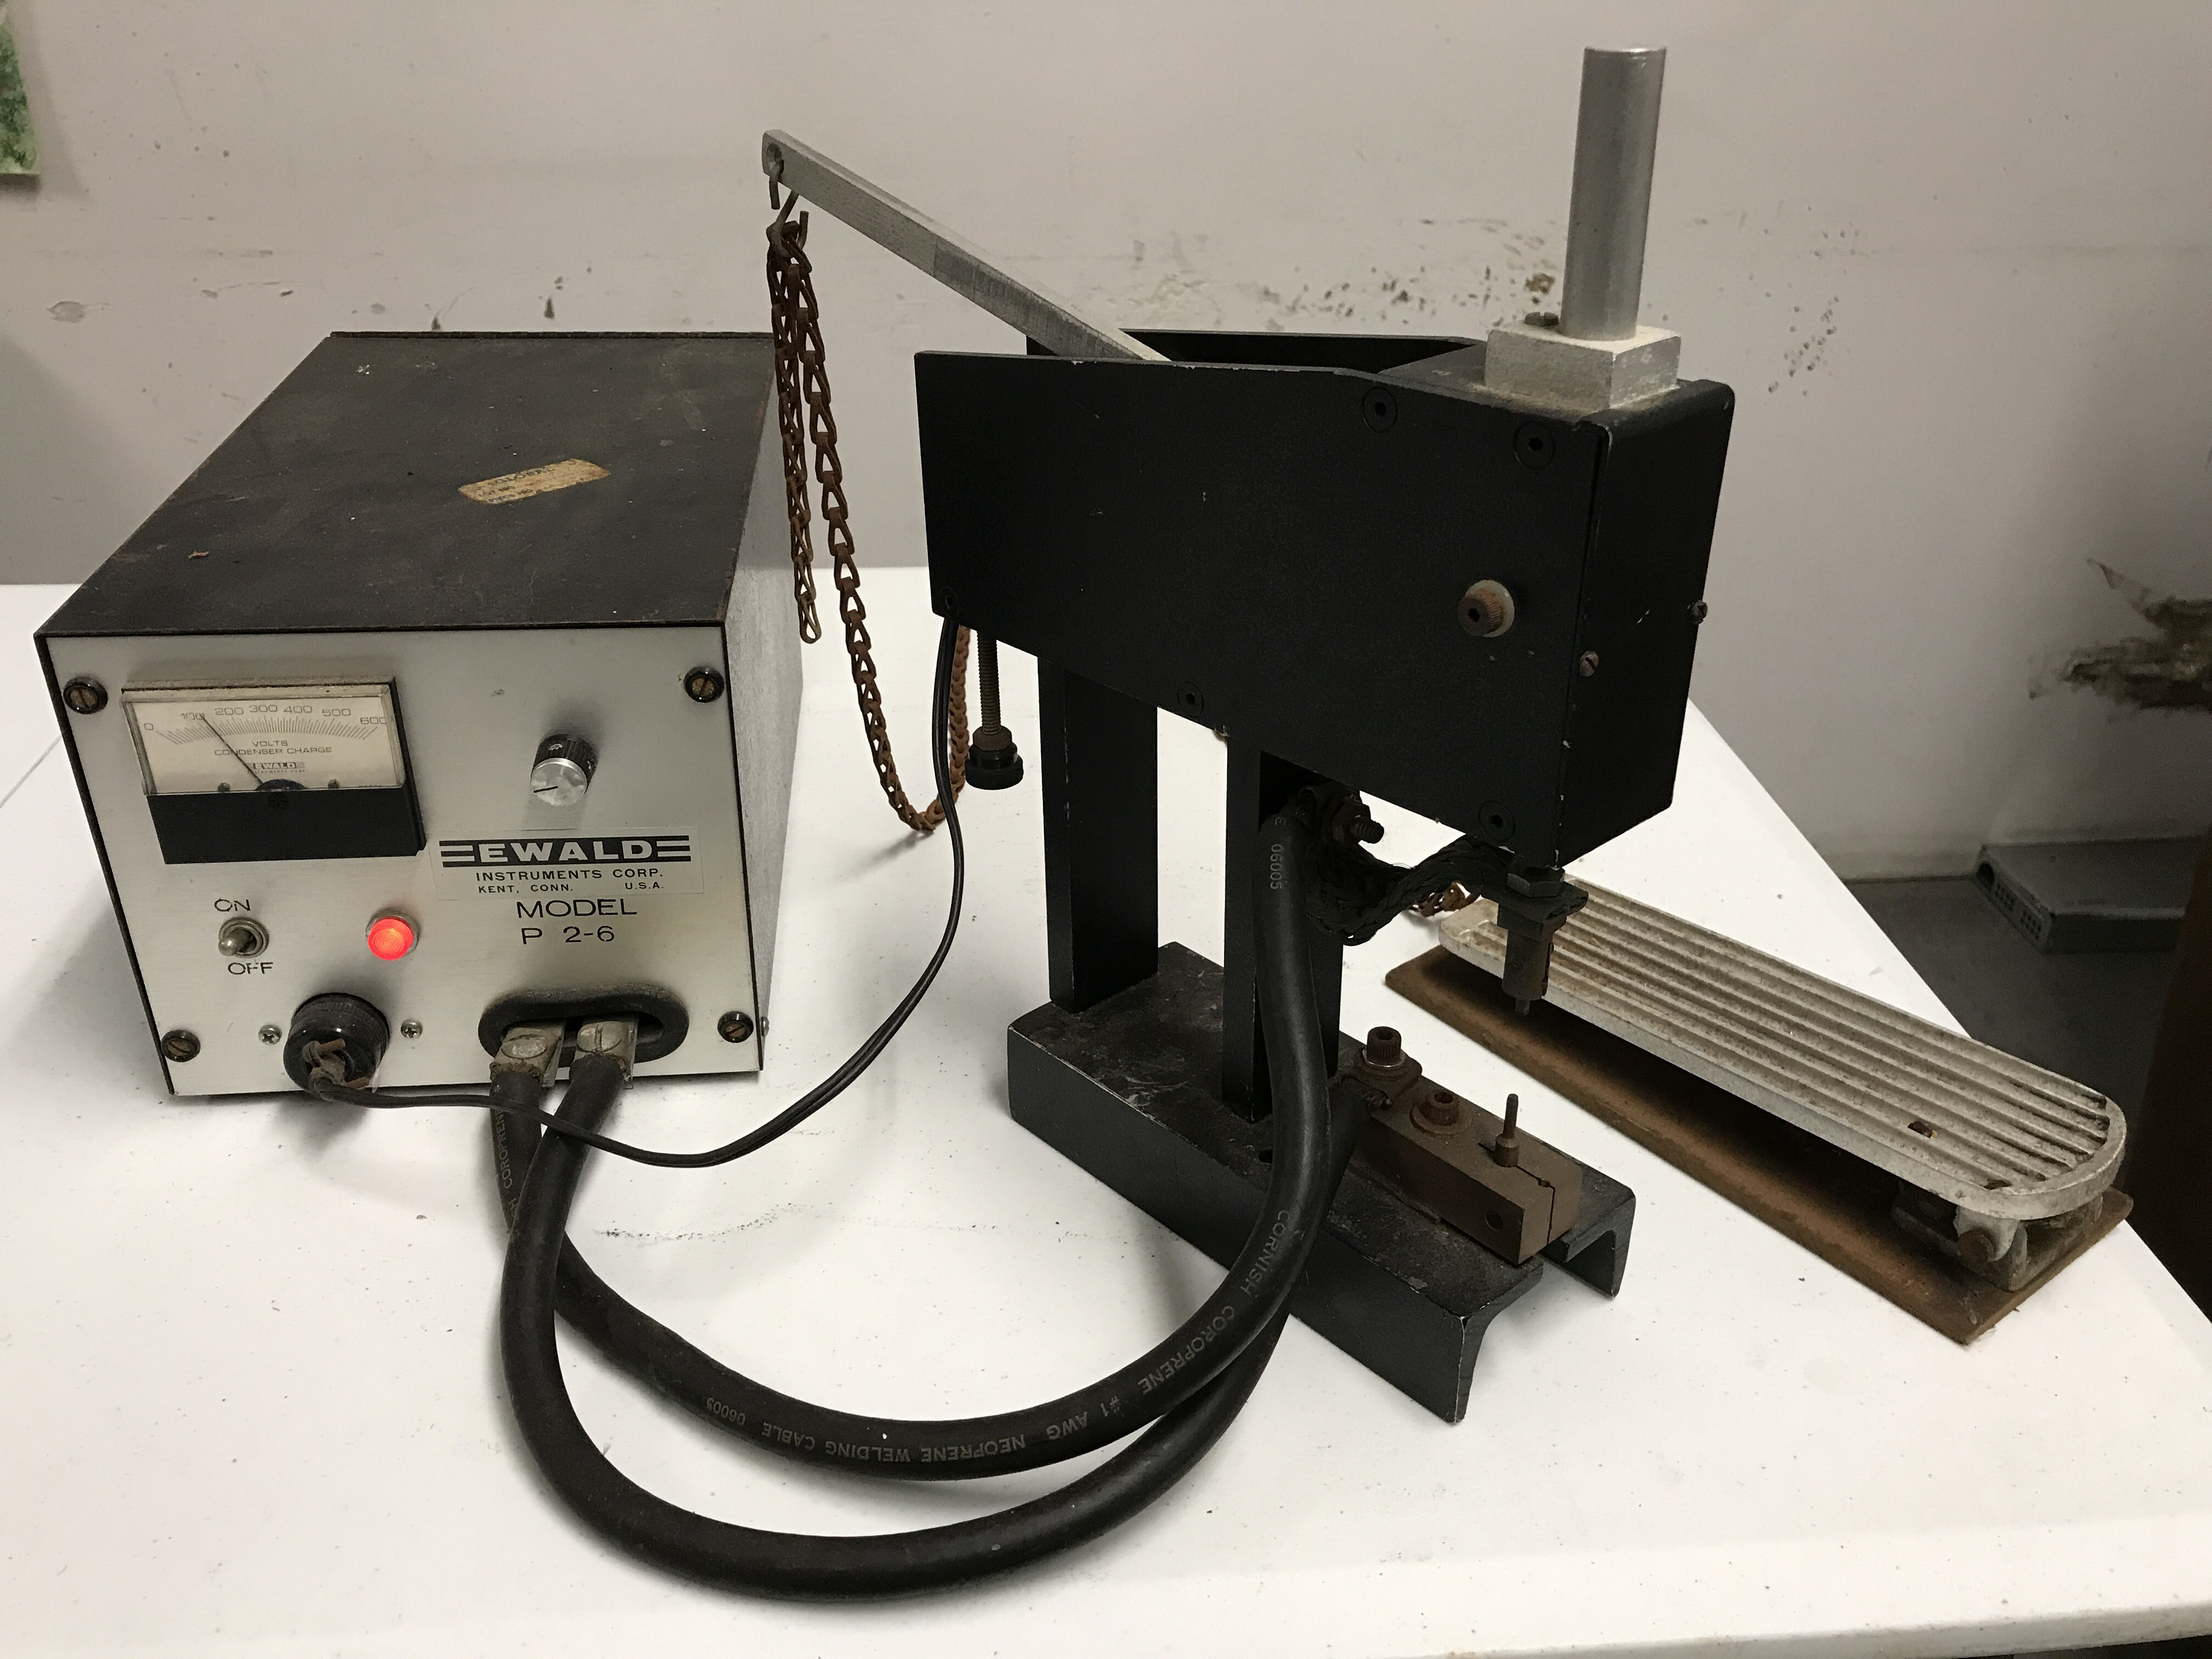 EWALD Welding Head and Power Source Model 4T